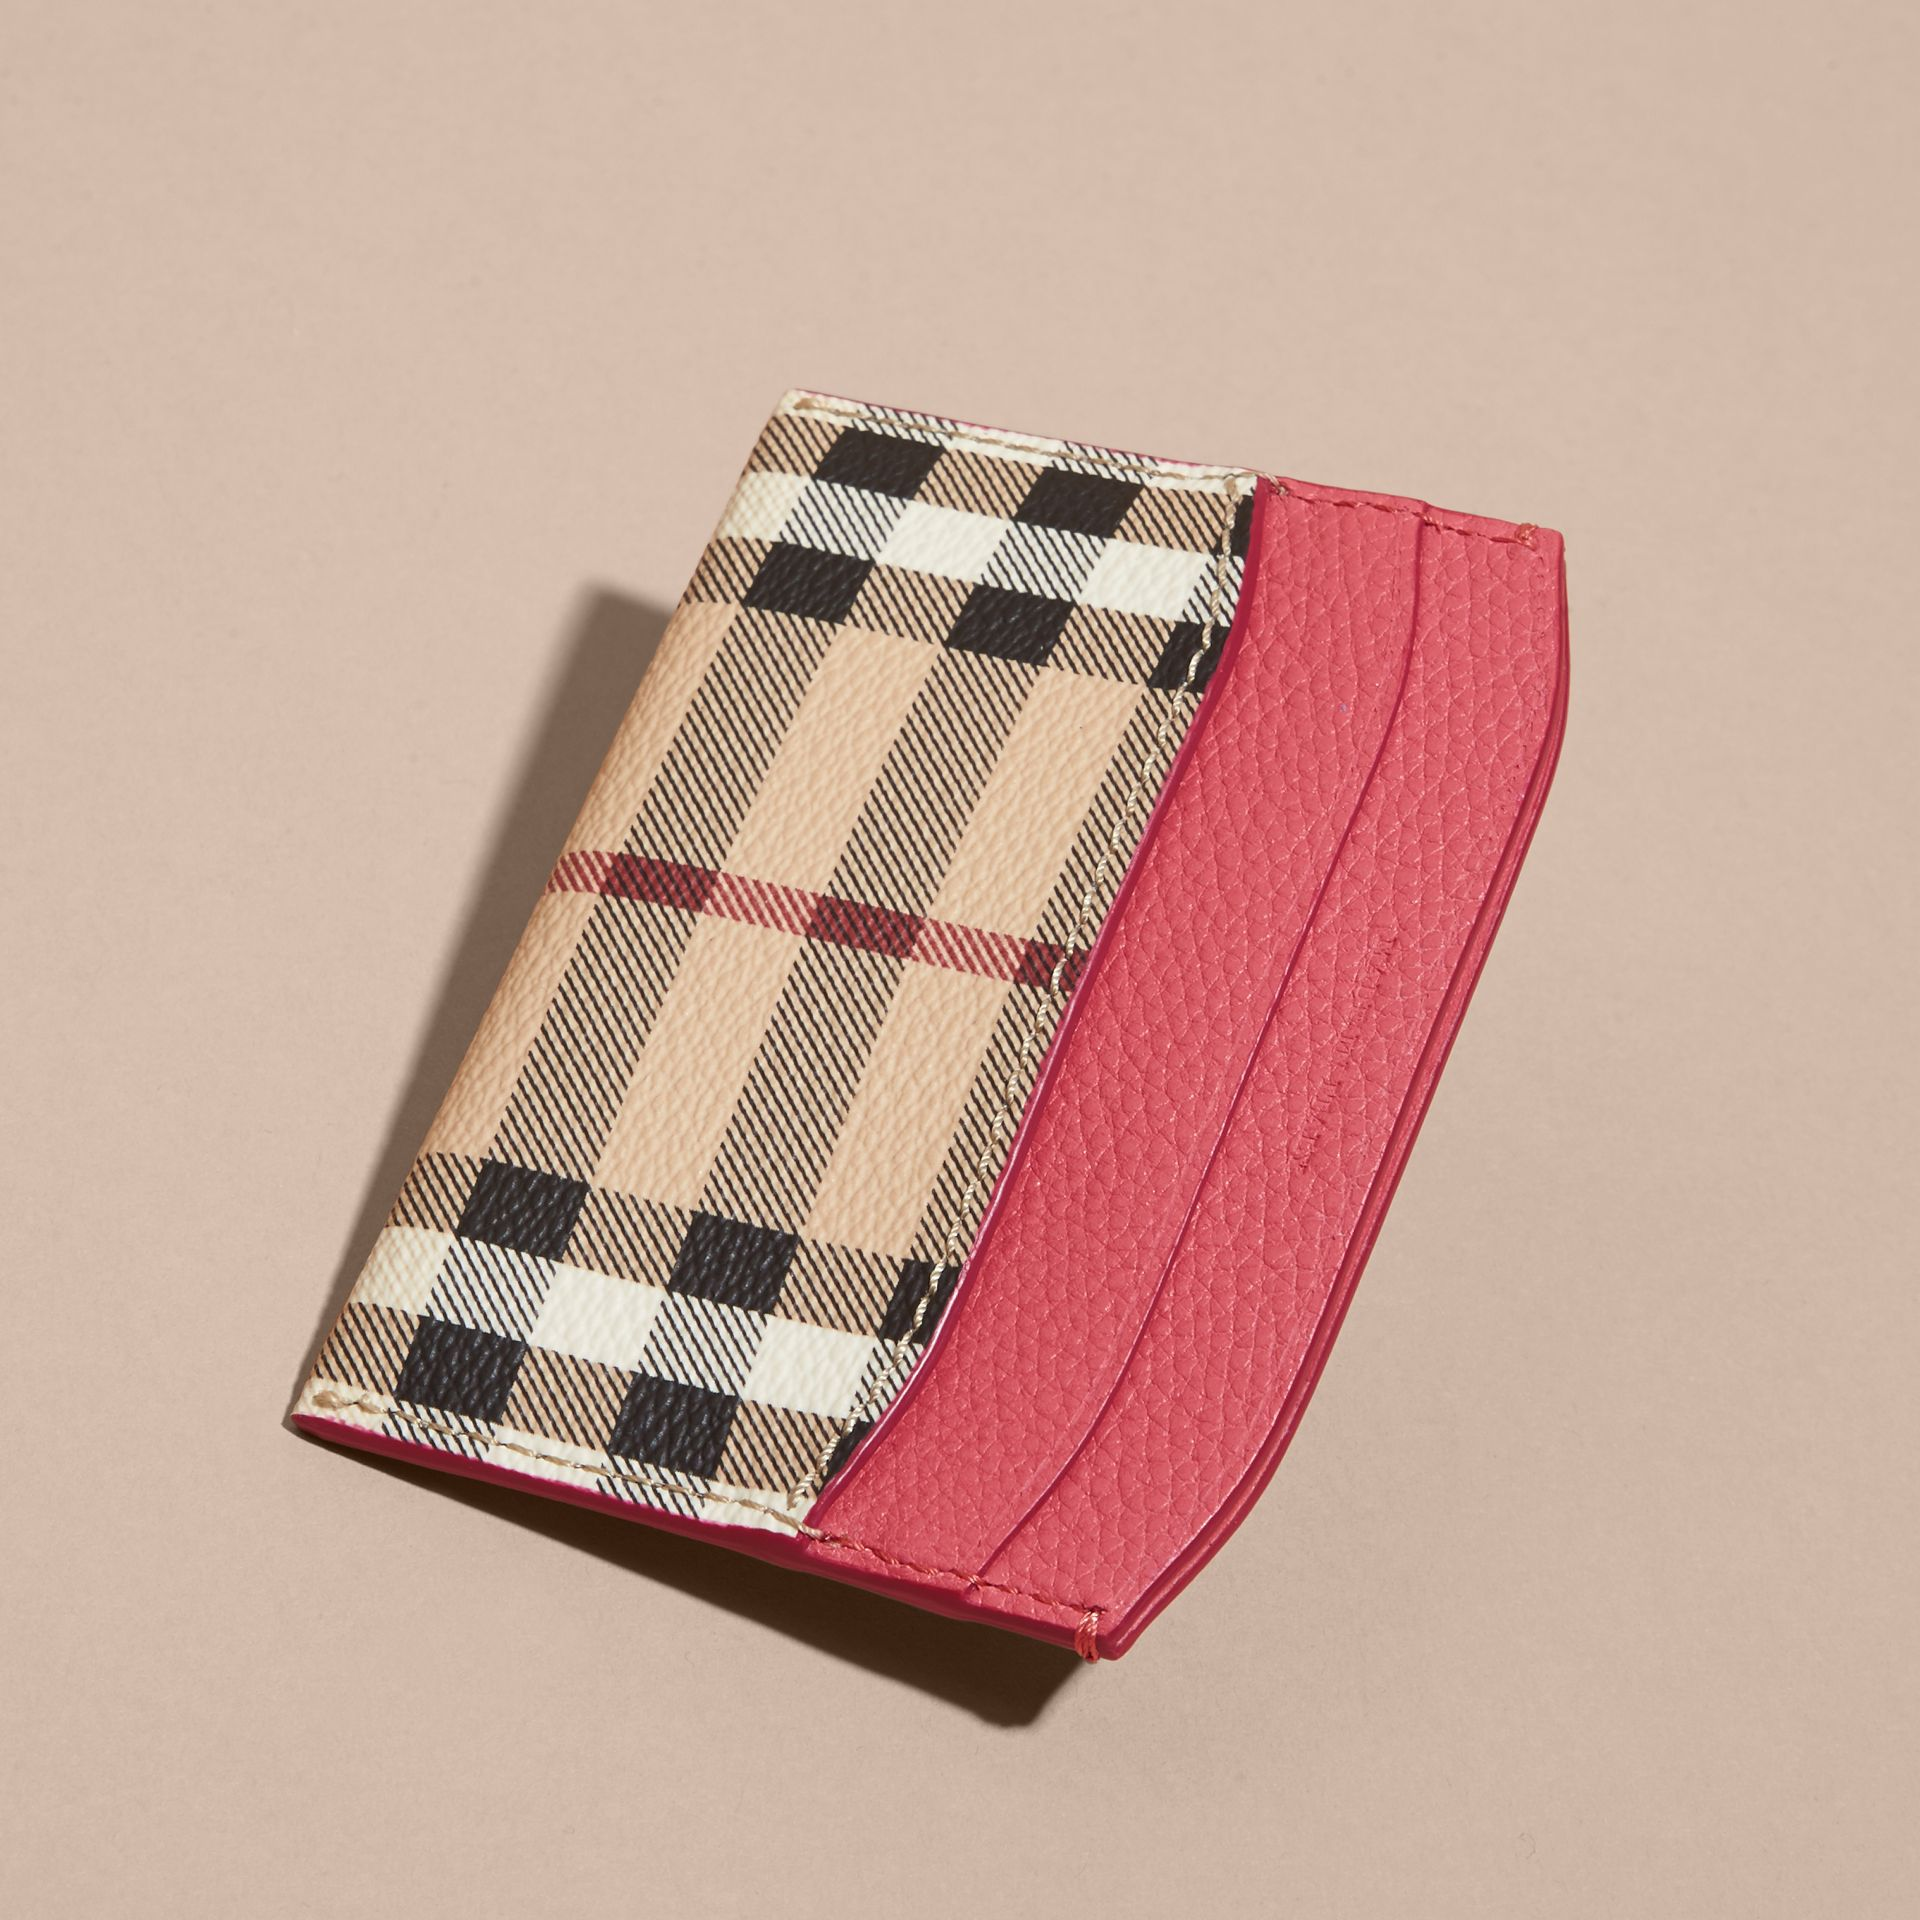 Haymarket Check and Leather Card Case in Plum Pink - Women | Burberry - gallery image 4